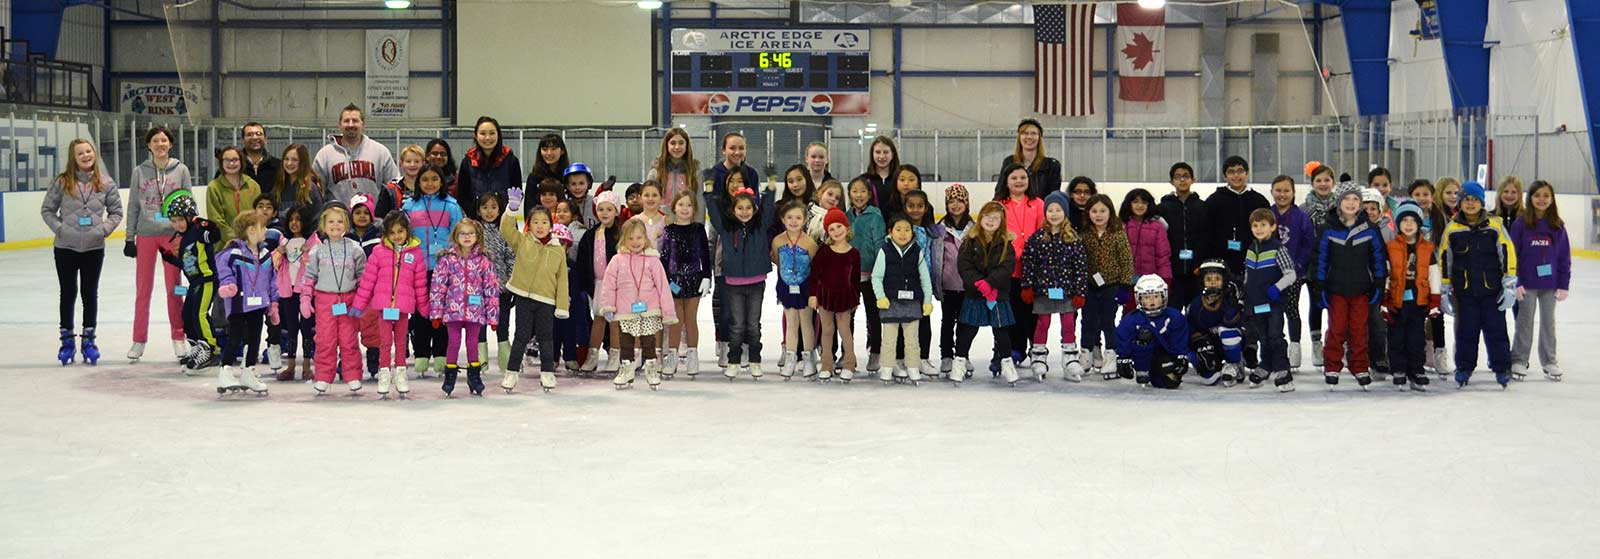 Arctic Edge Ice Arena of Canton - Skating Rinks - 46615 ...